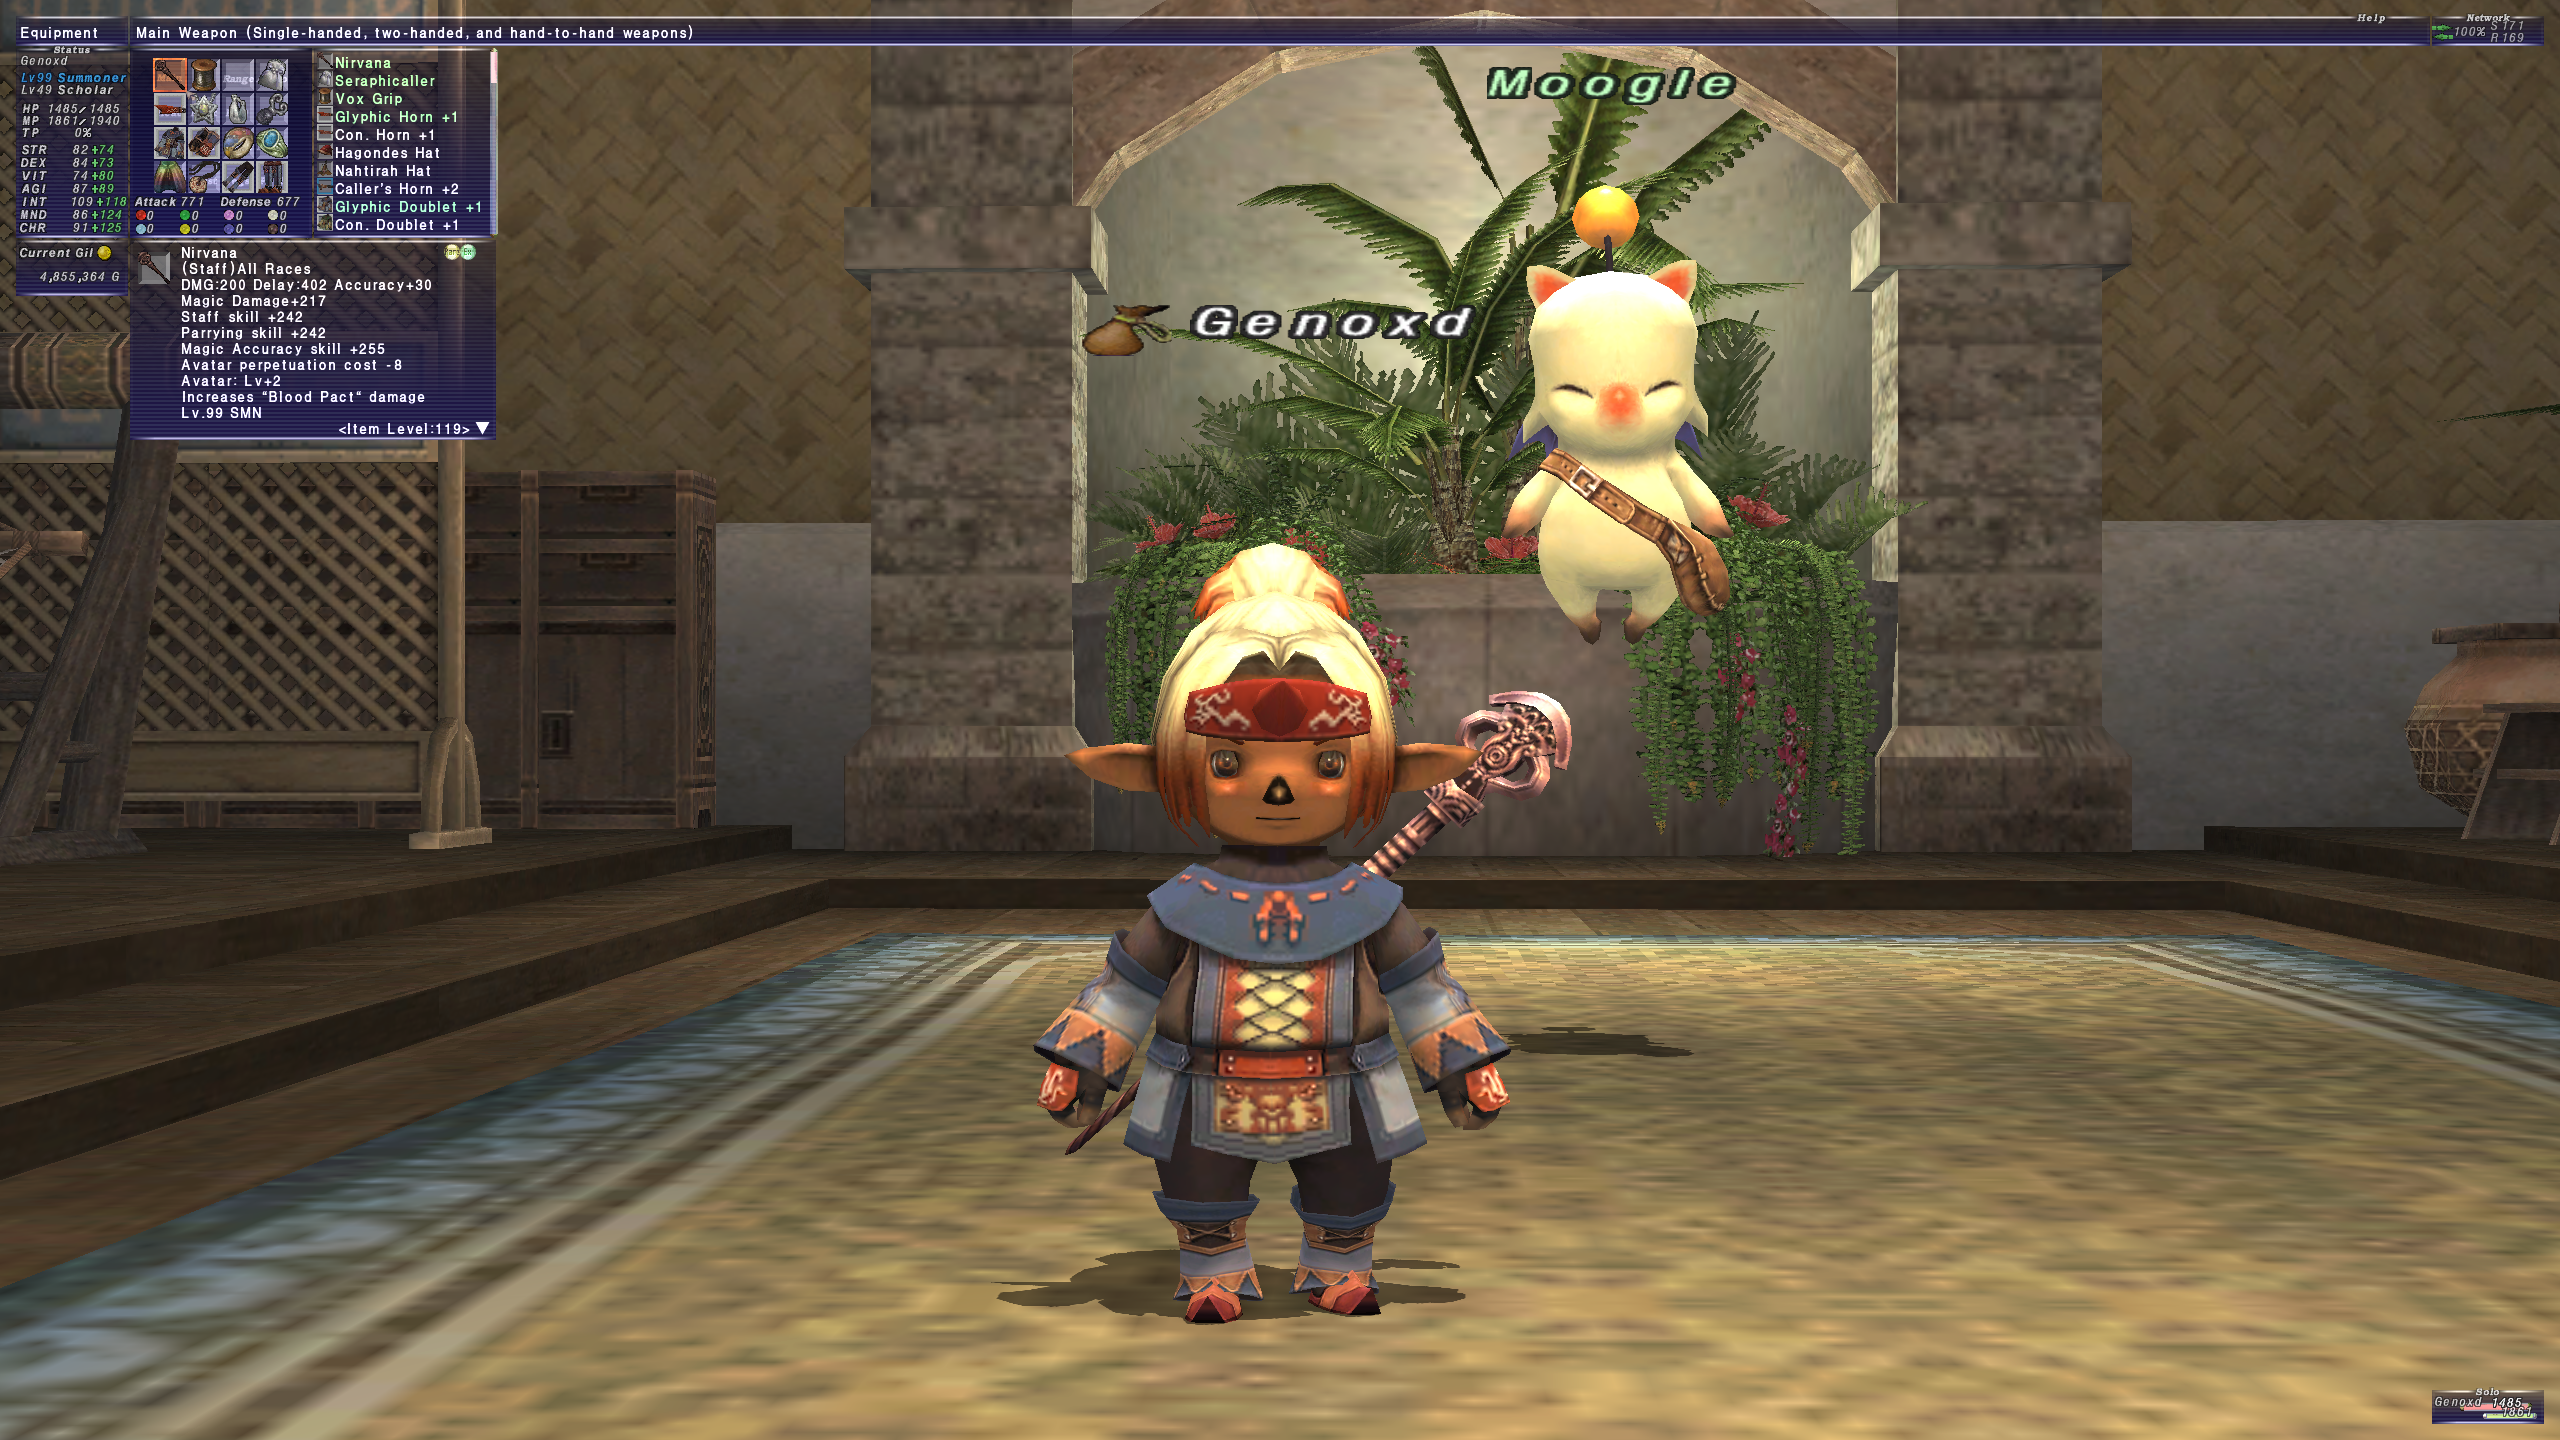 geno3302 ffxi doing this that comes love down proph also caliburn grats tool shame like prophett moirai leviathan list relicmythic weapons seems completed known time long forever